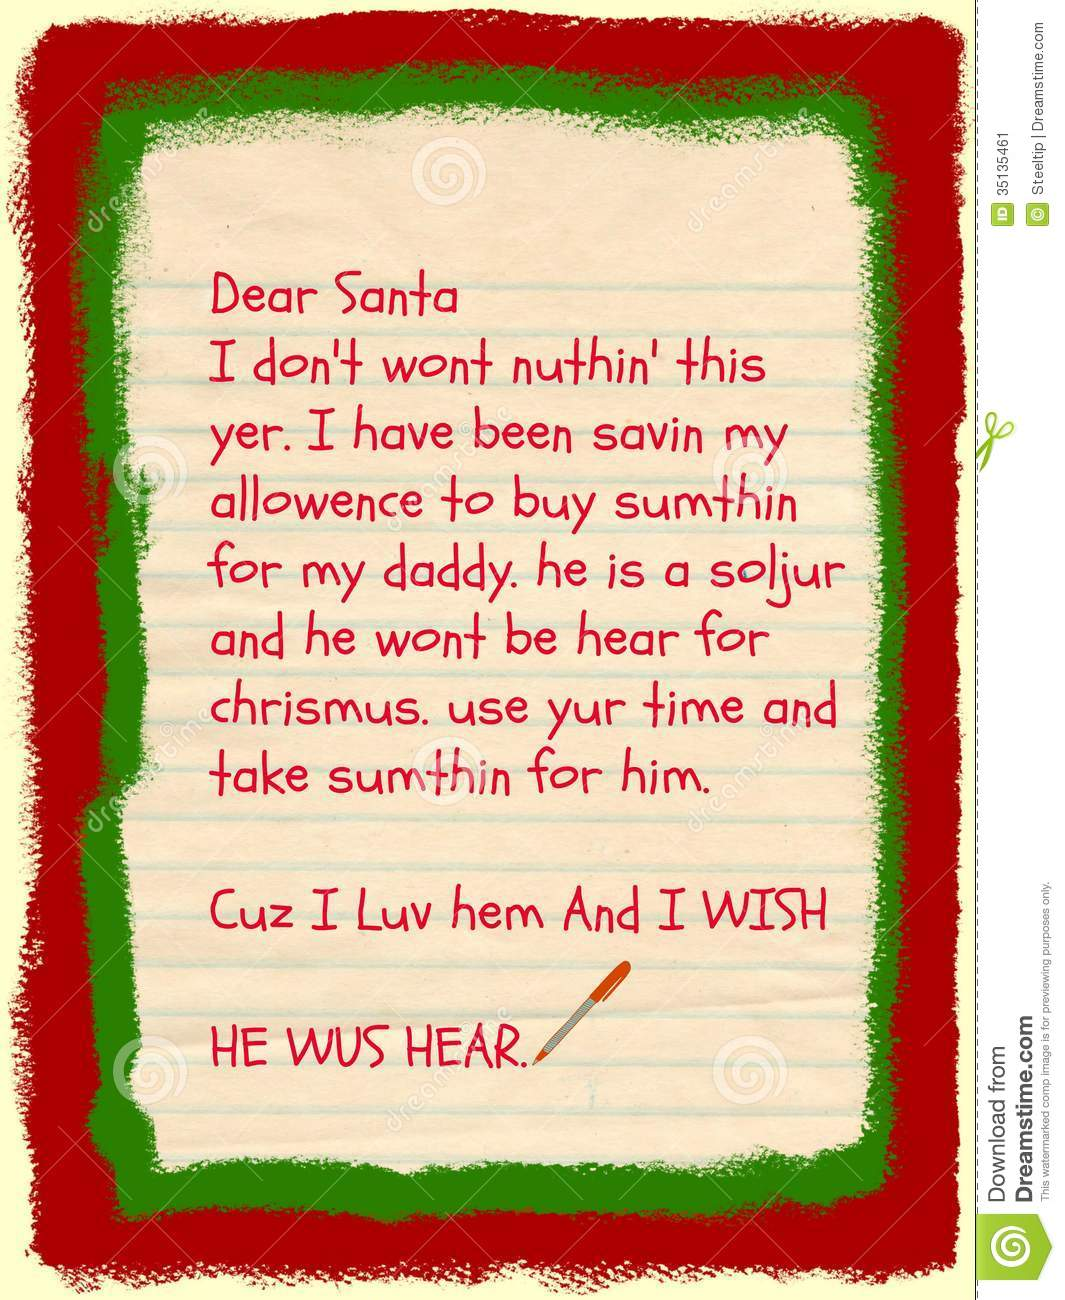 Stock Image: Santa Letter: Requests Gift For Military Dad. Image ...